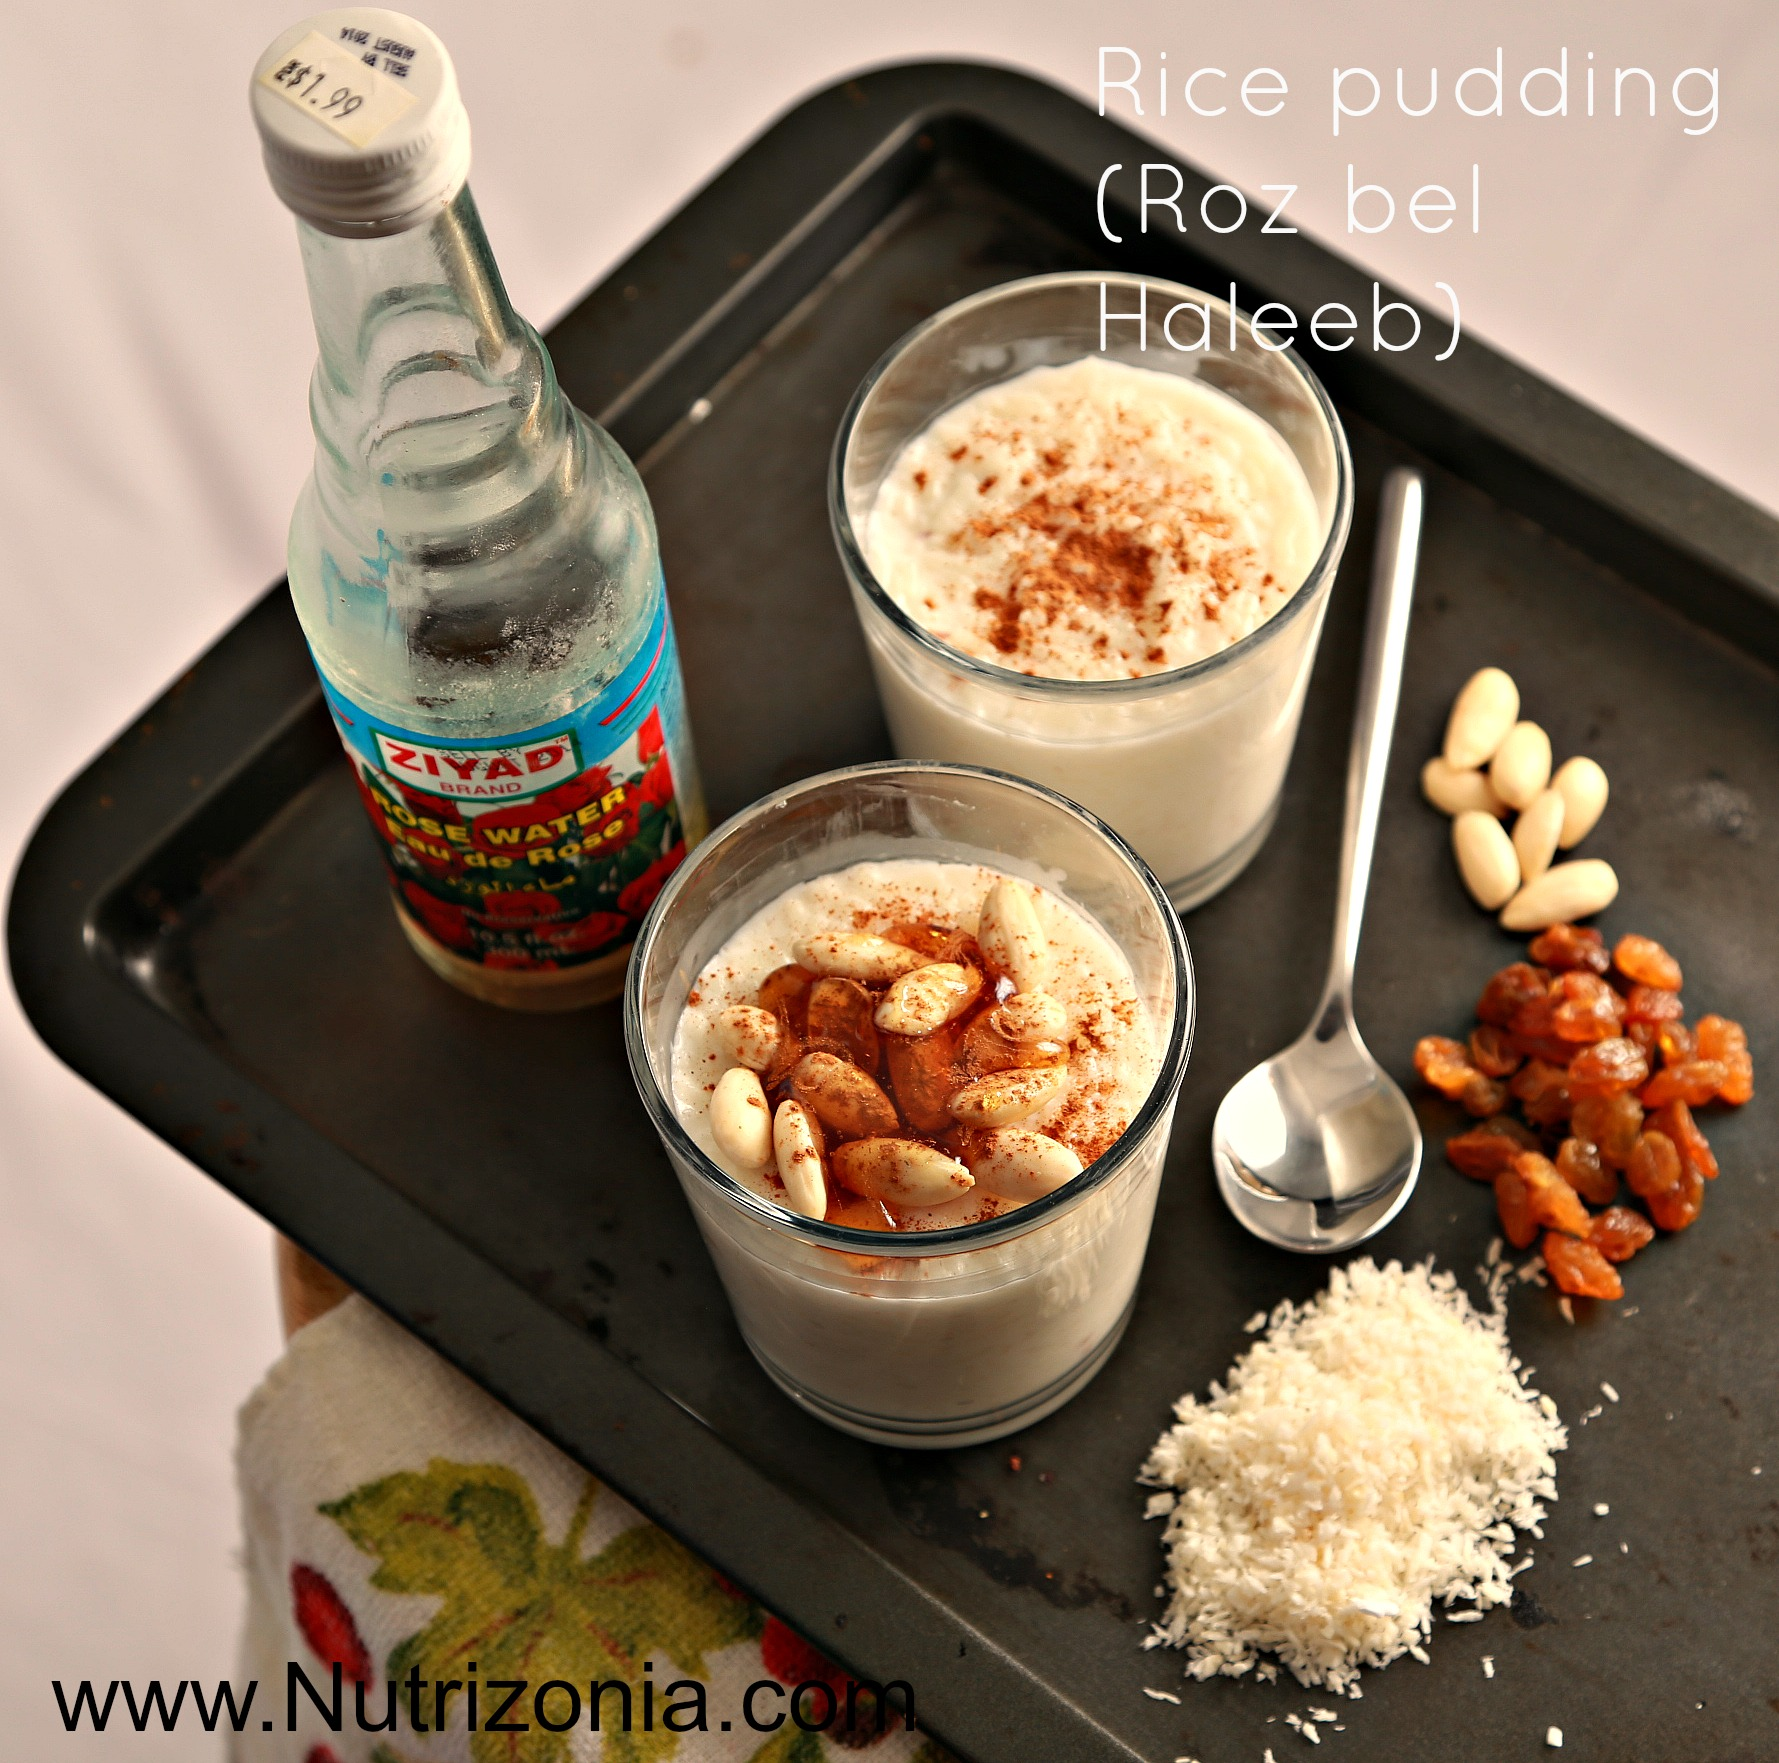 Rice pudding roz bel haleeb this rice pudding is a popular dessert in arabic cuisine and the whole world my mom made it very often especially for my dad forumfinder Image collections